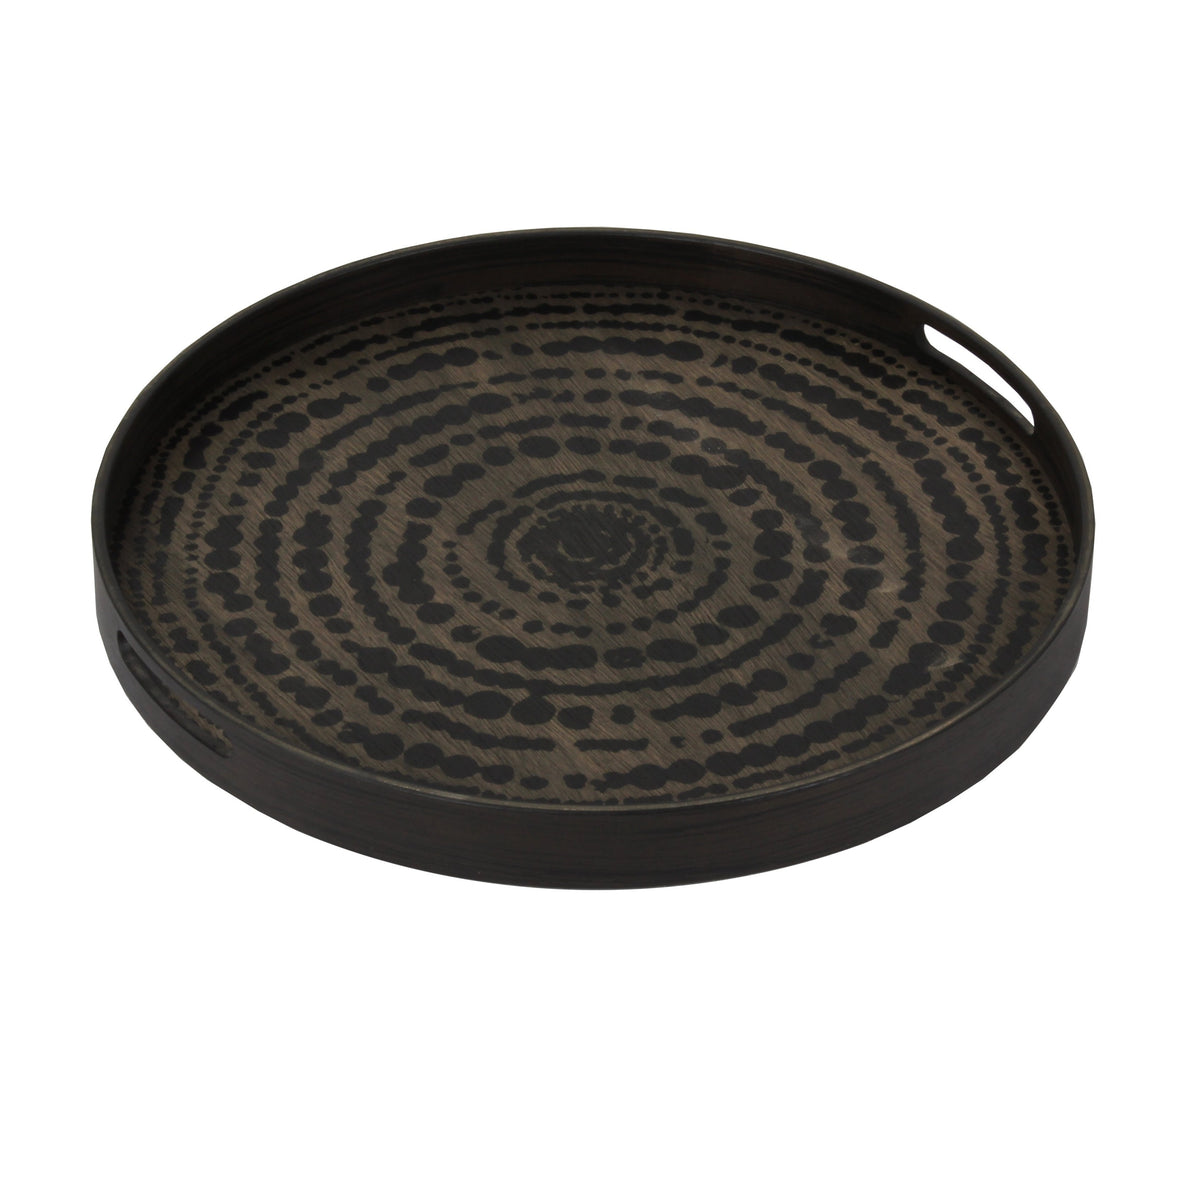 Black Beads driftwood tray RO/S